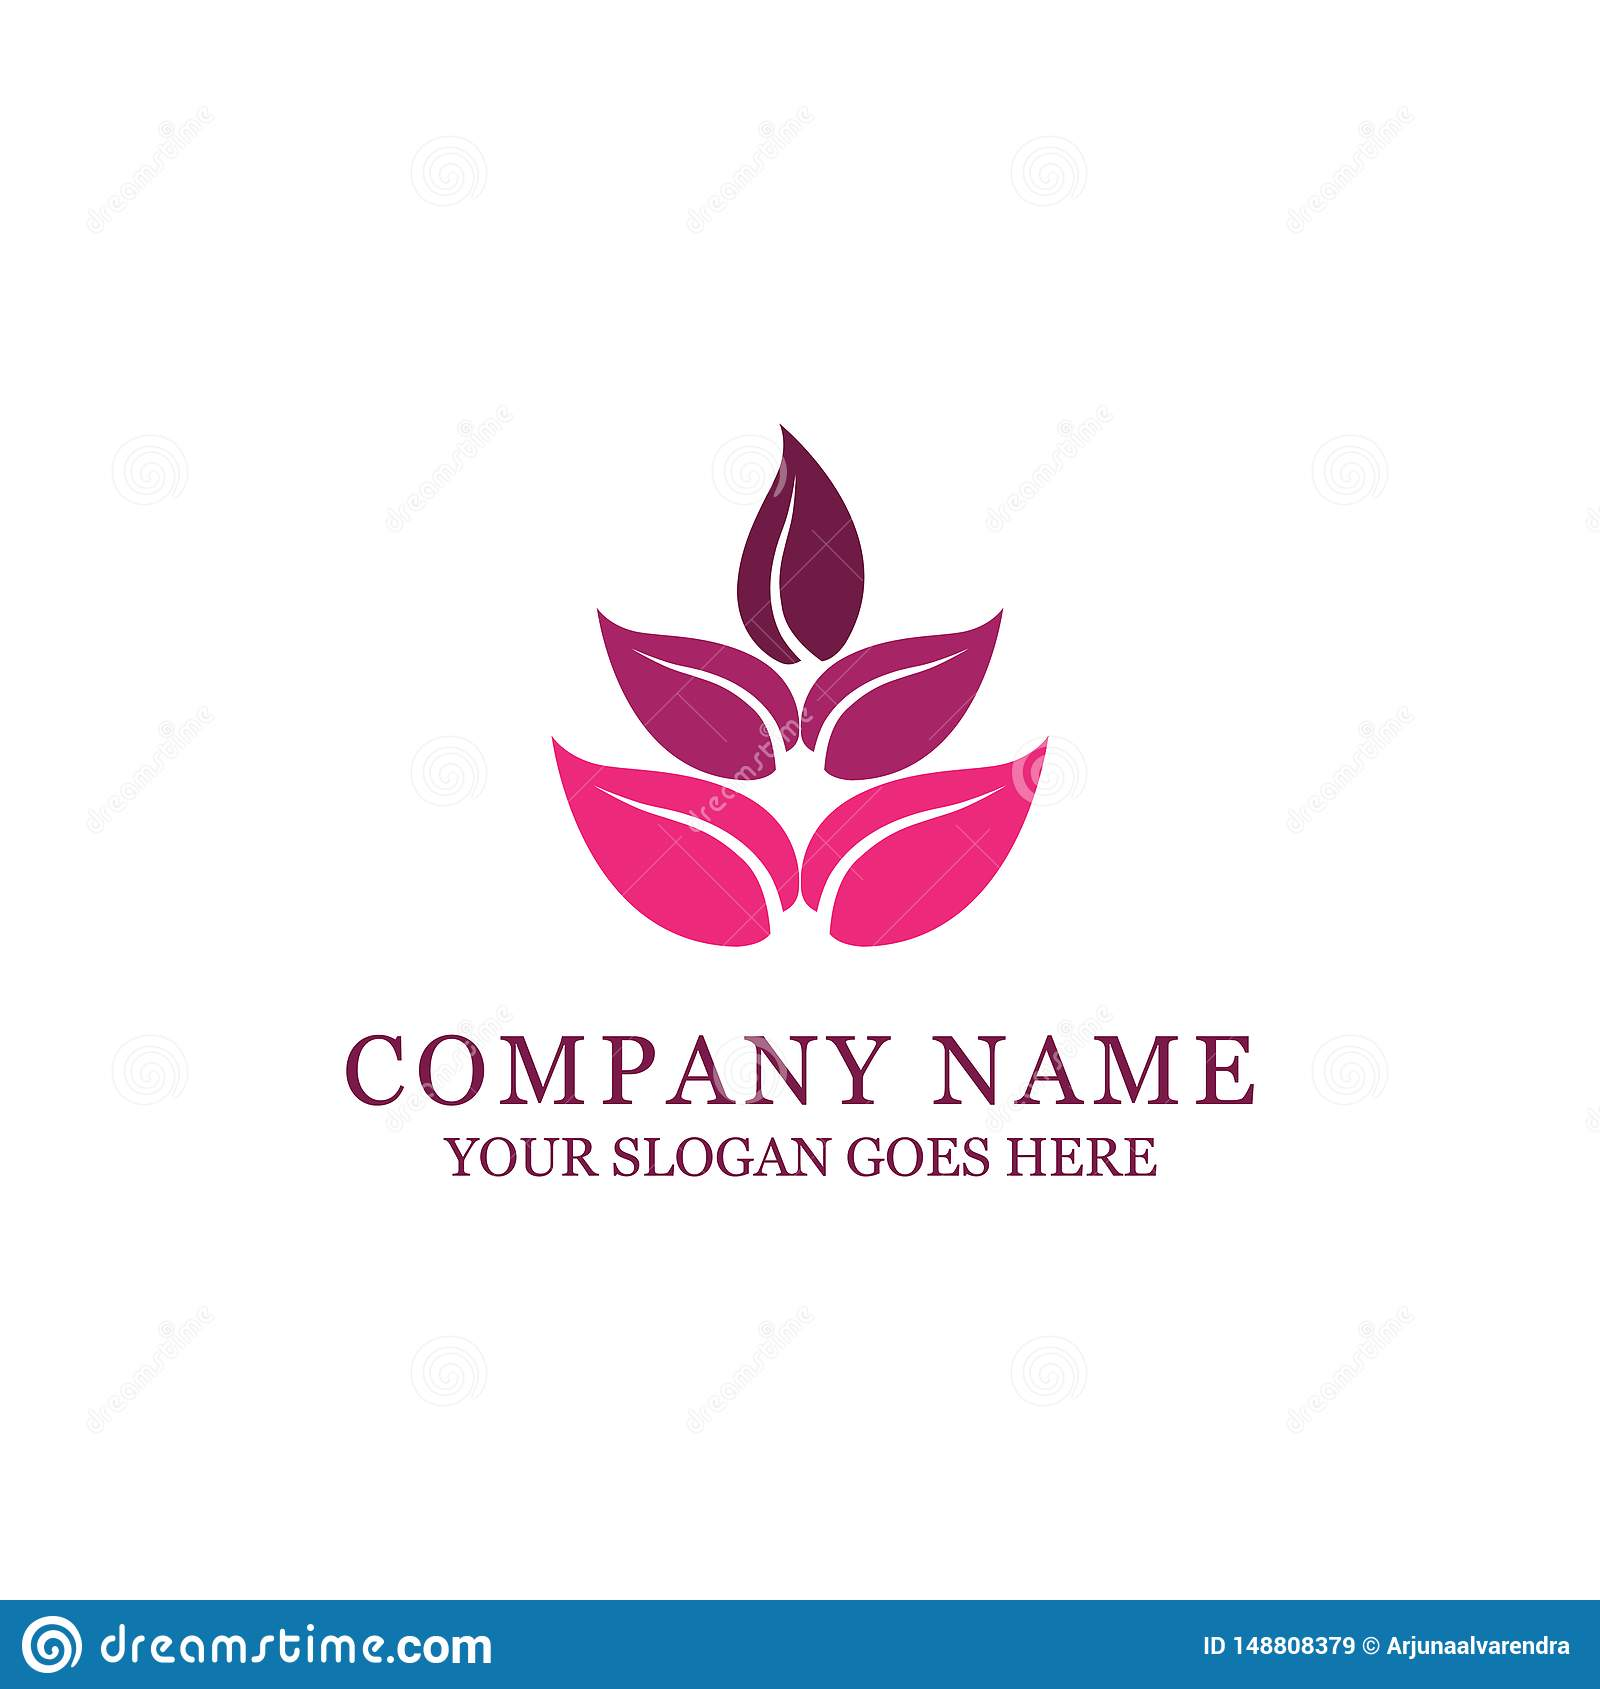 Spa and fashion style logo design with abstract flower